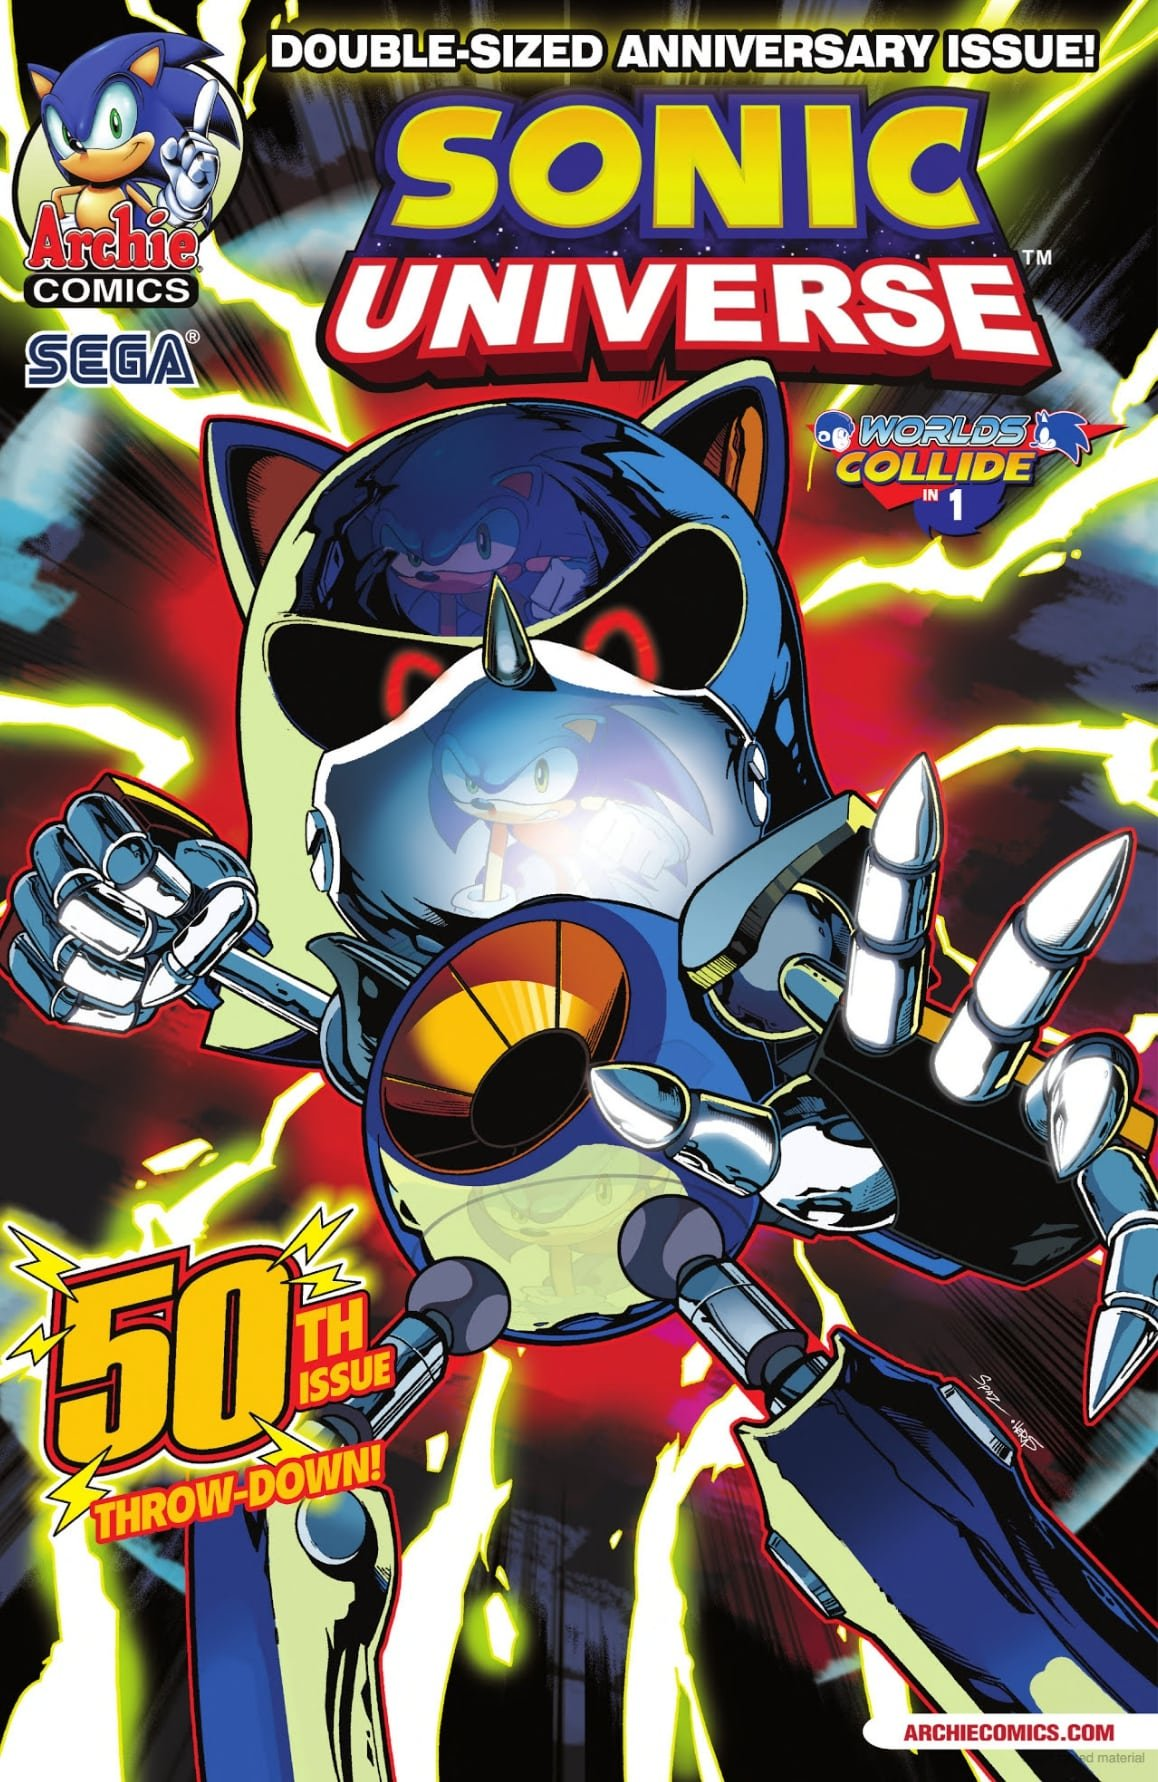 Sonic Universe 050 (May 2013)